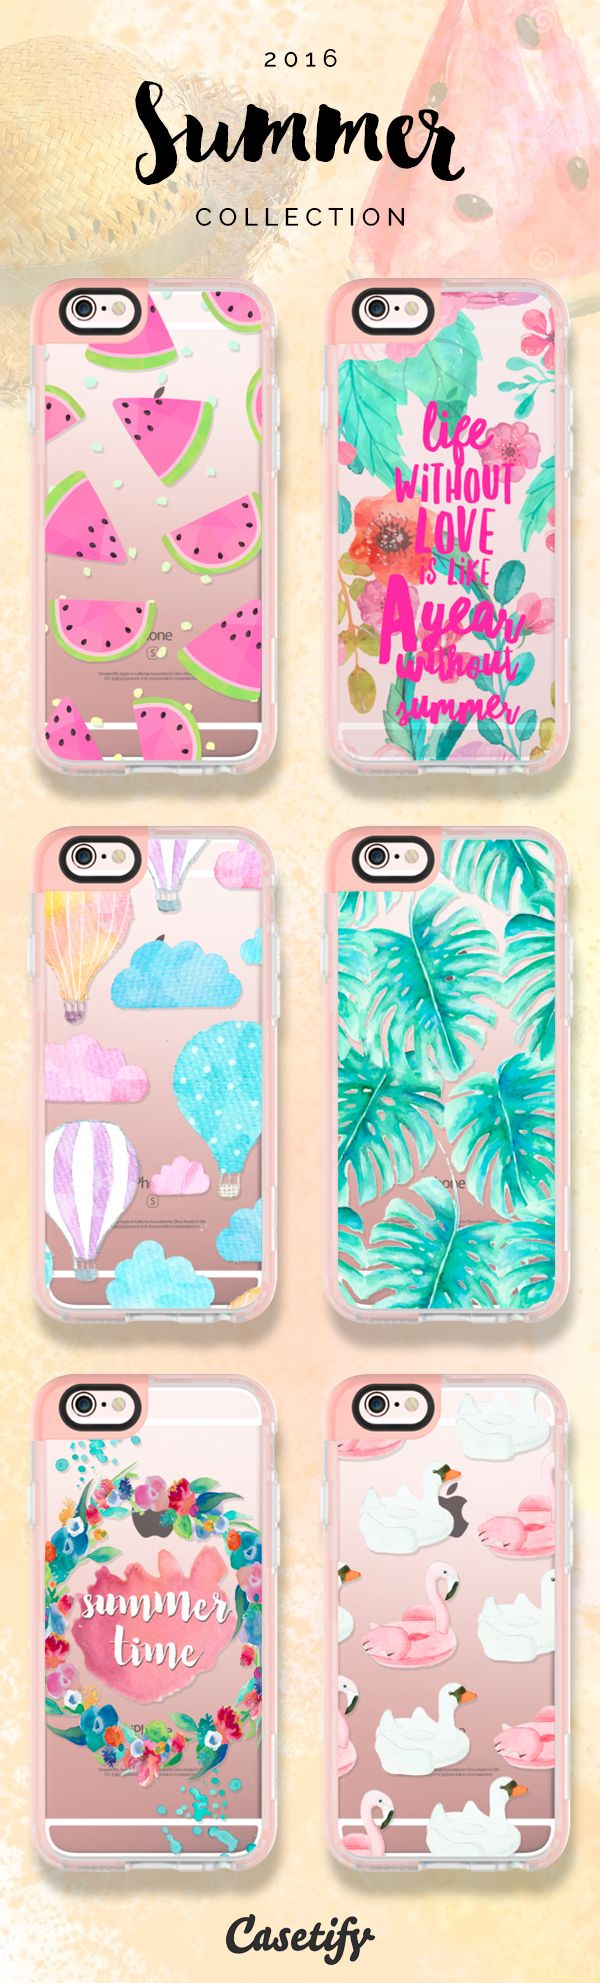 Let's have some fun in the sun! Click through to check out our latest 2016 #summer collection >>> https://www.casetify.com/collections/summer | @casetify